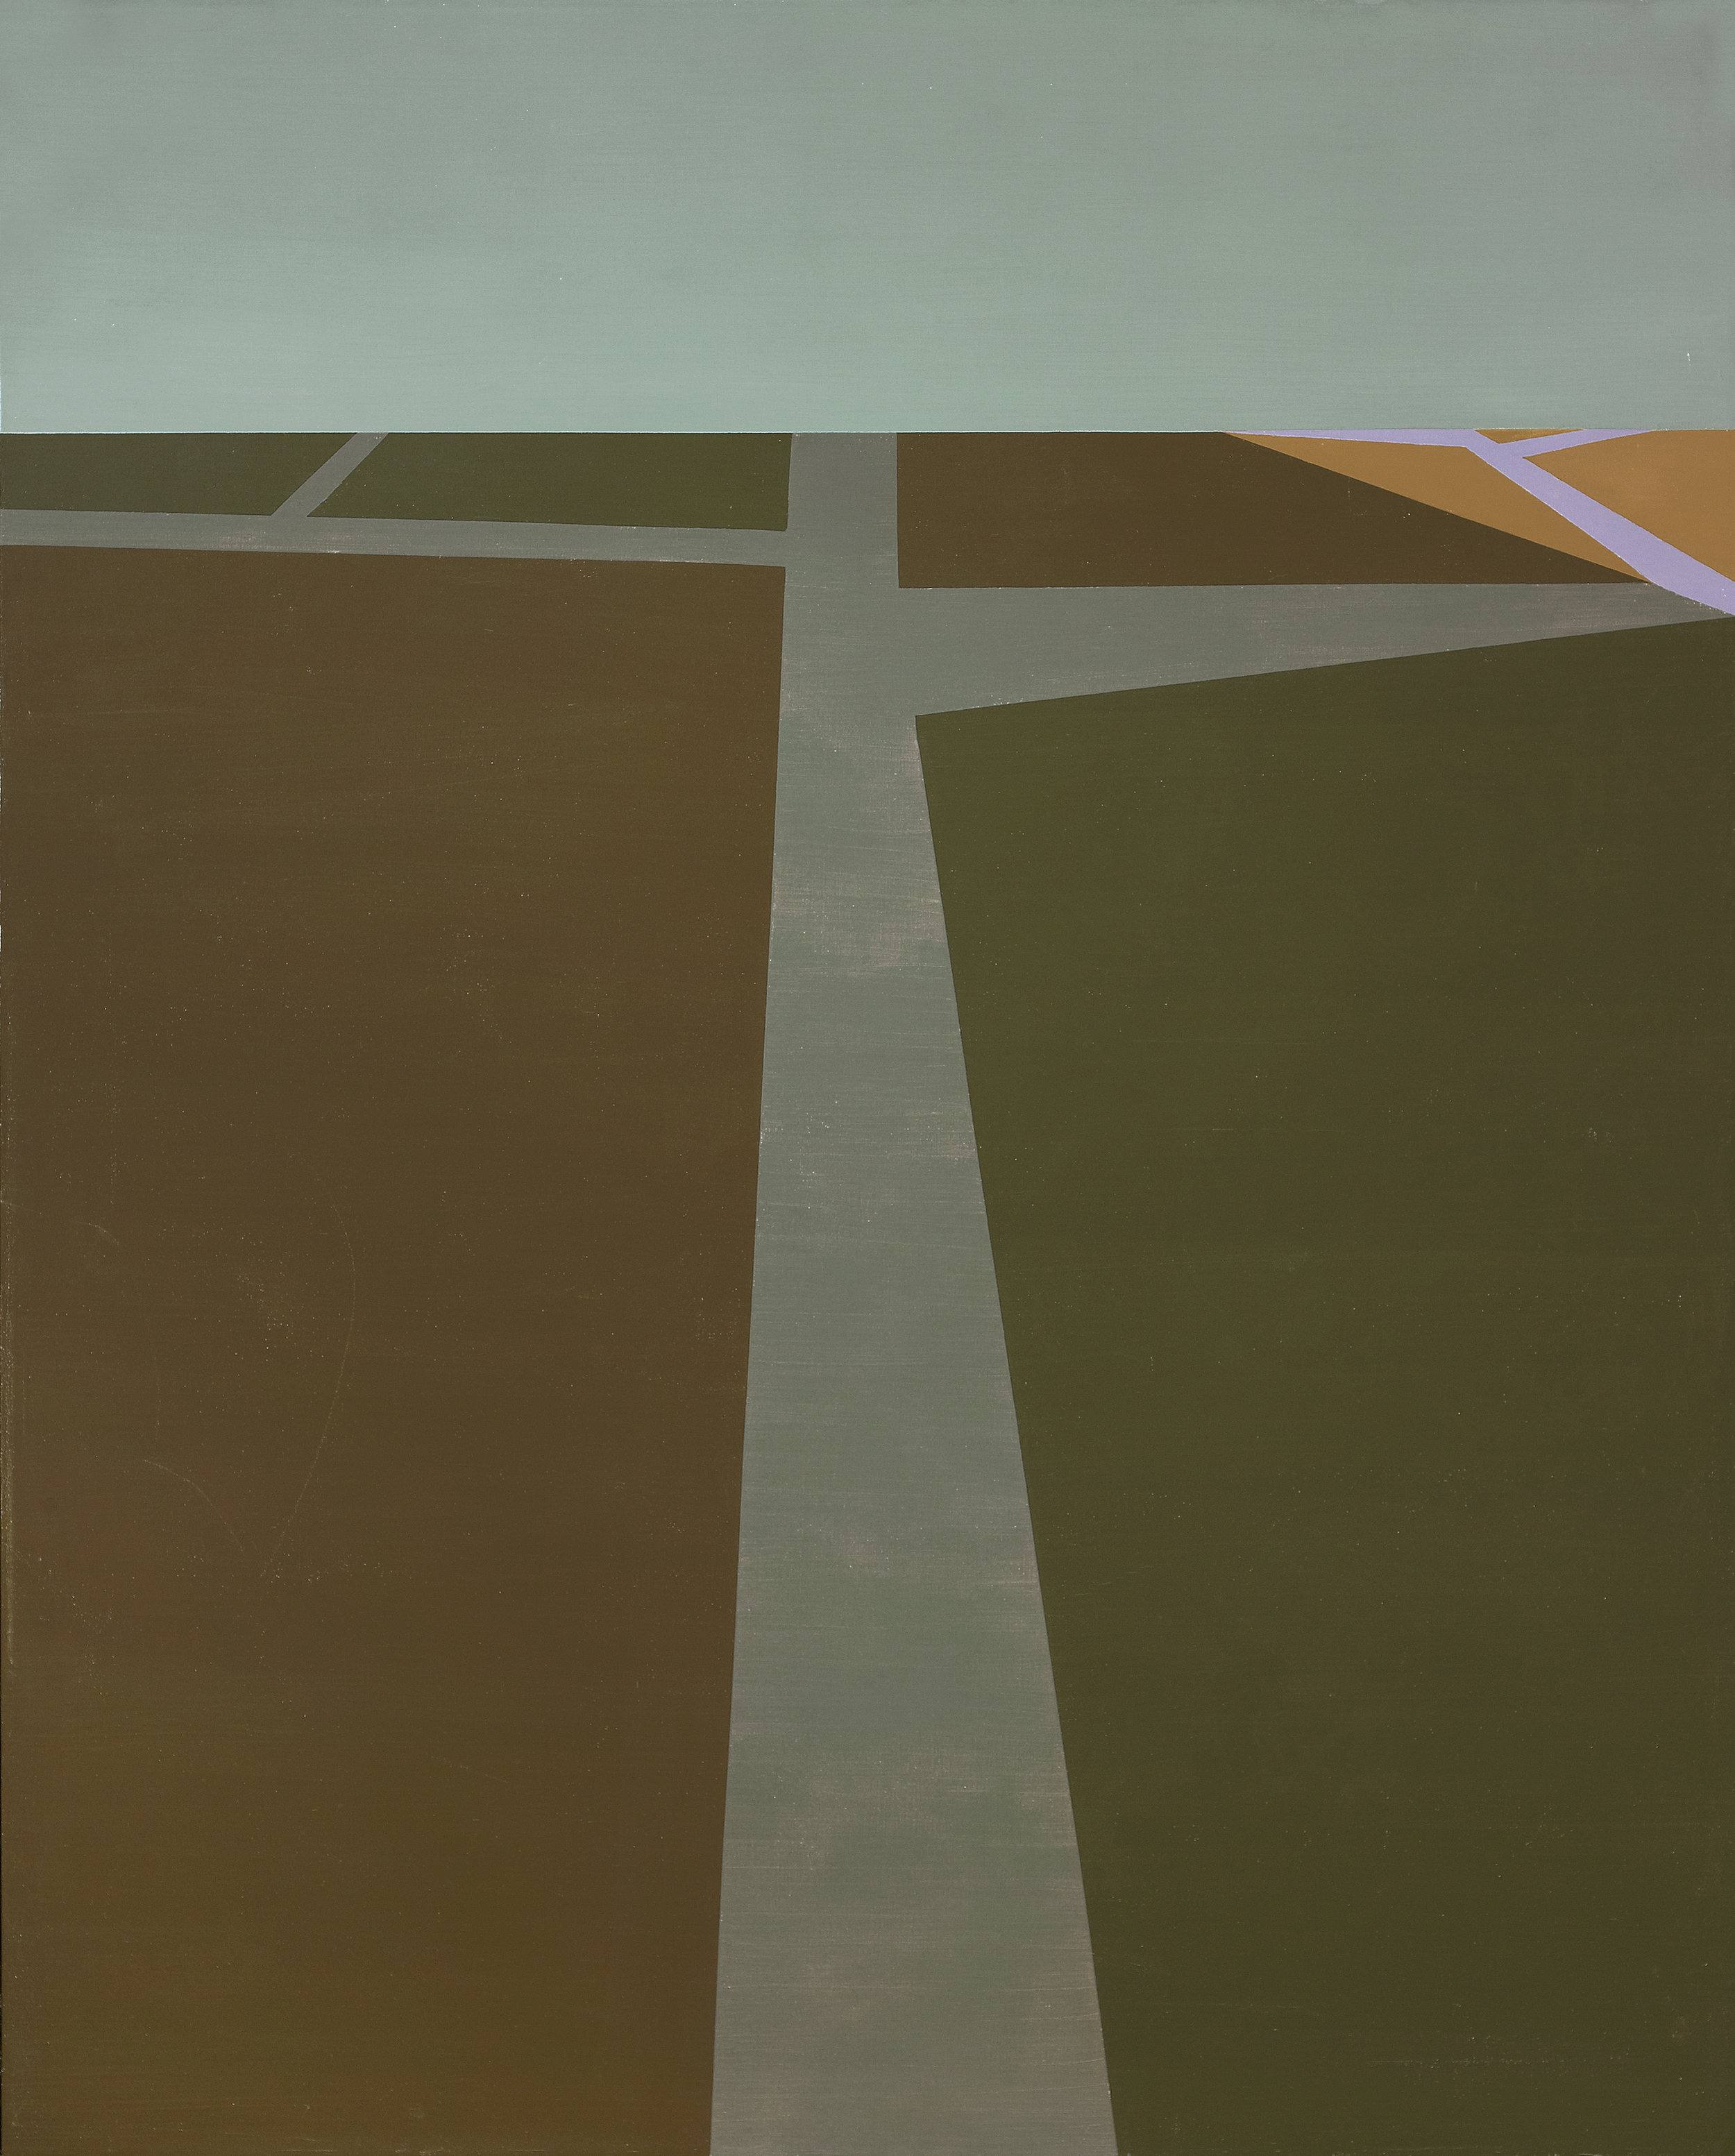 The Poet's Road , 1961  oil on canvas 50 x 40 inches; 127 x 101.6 centimeters